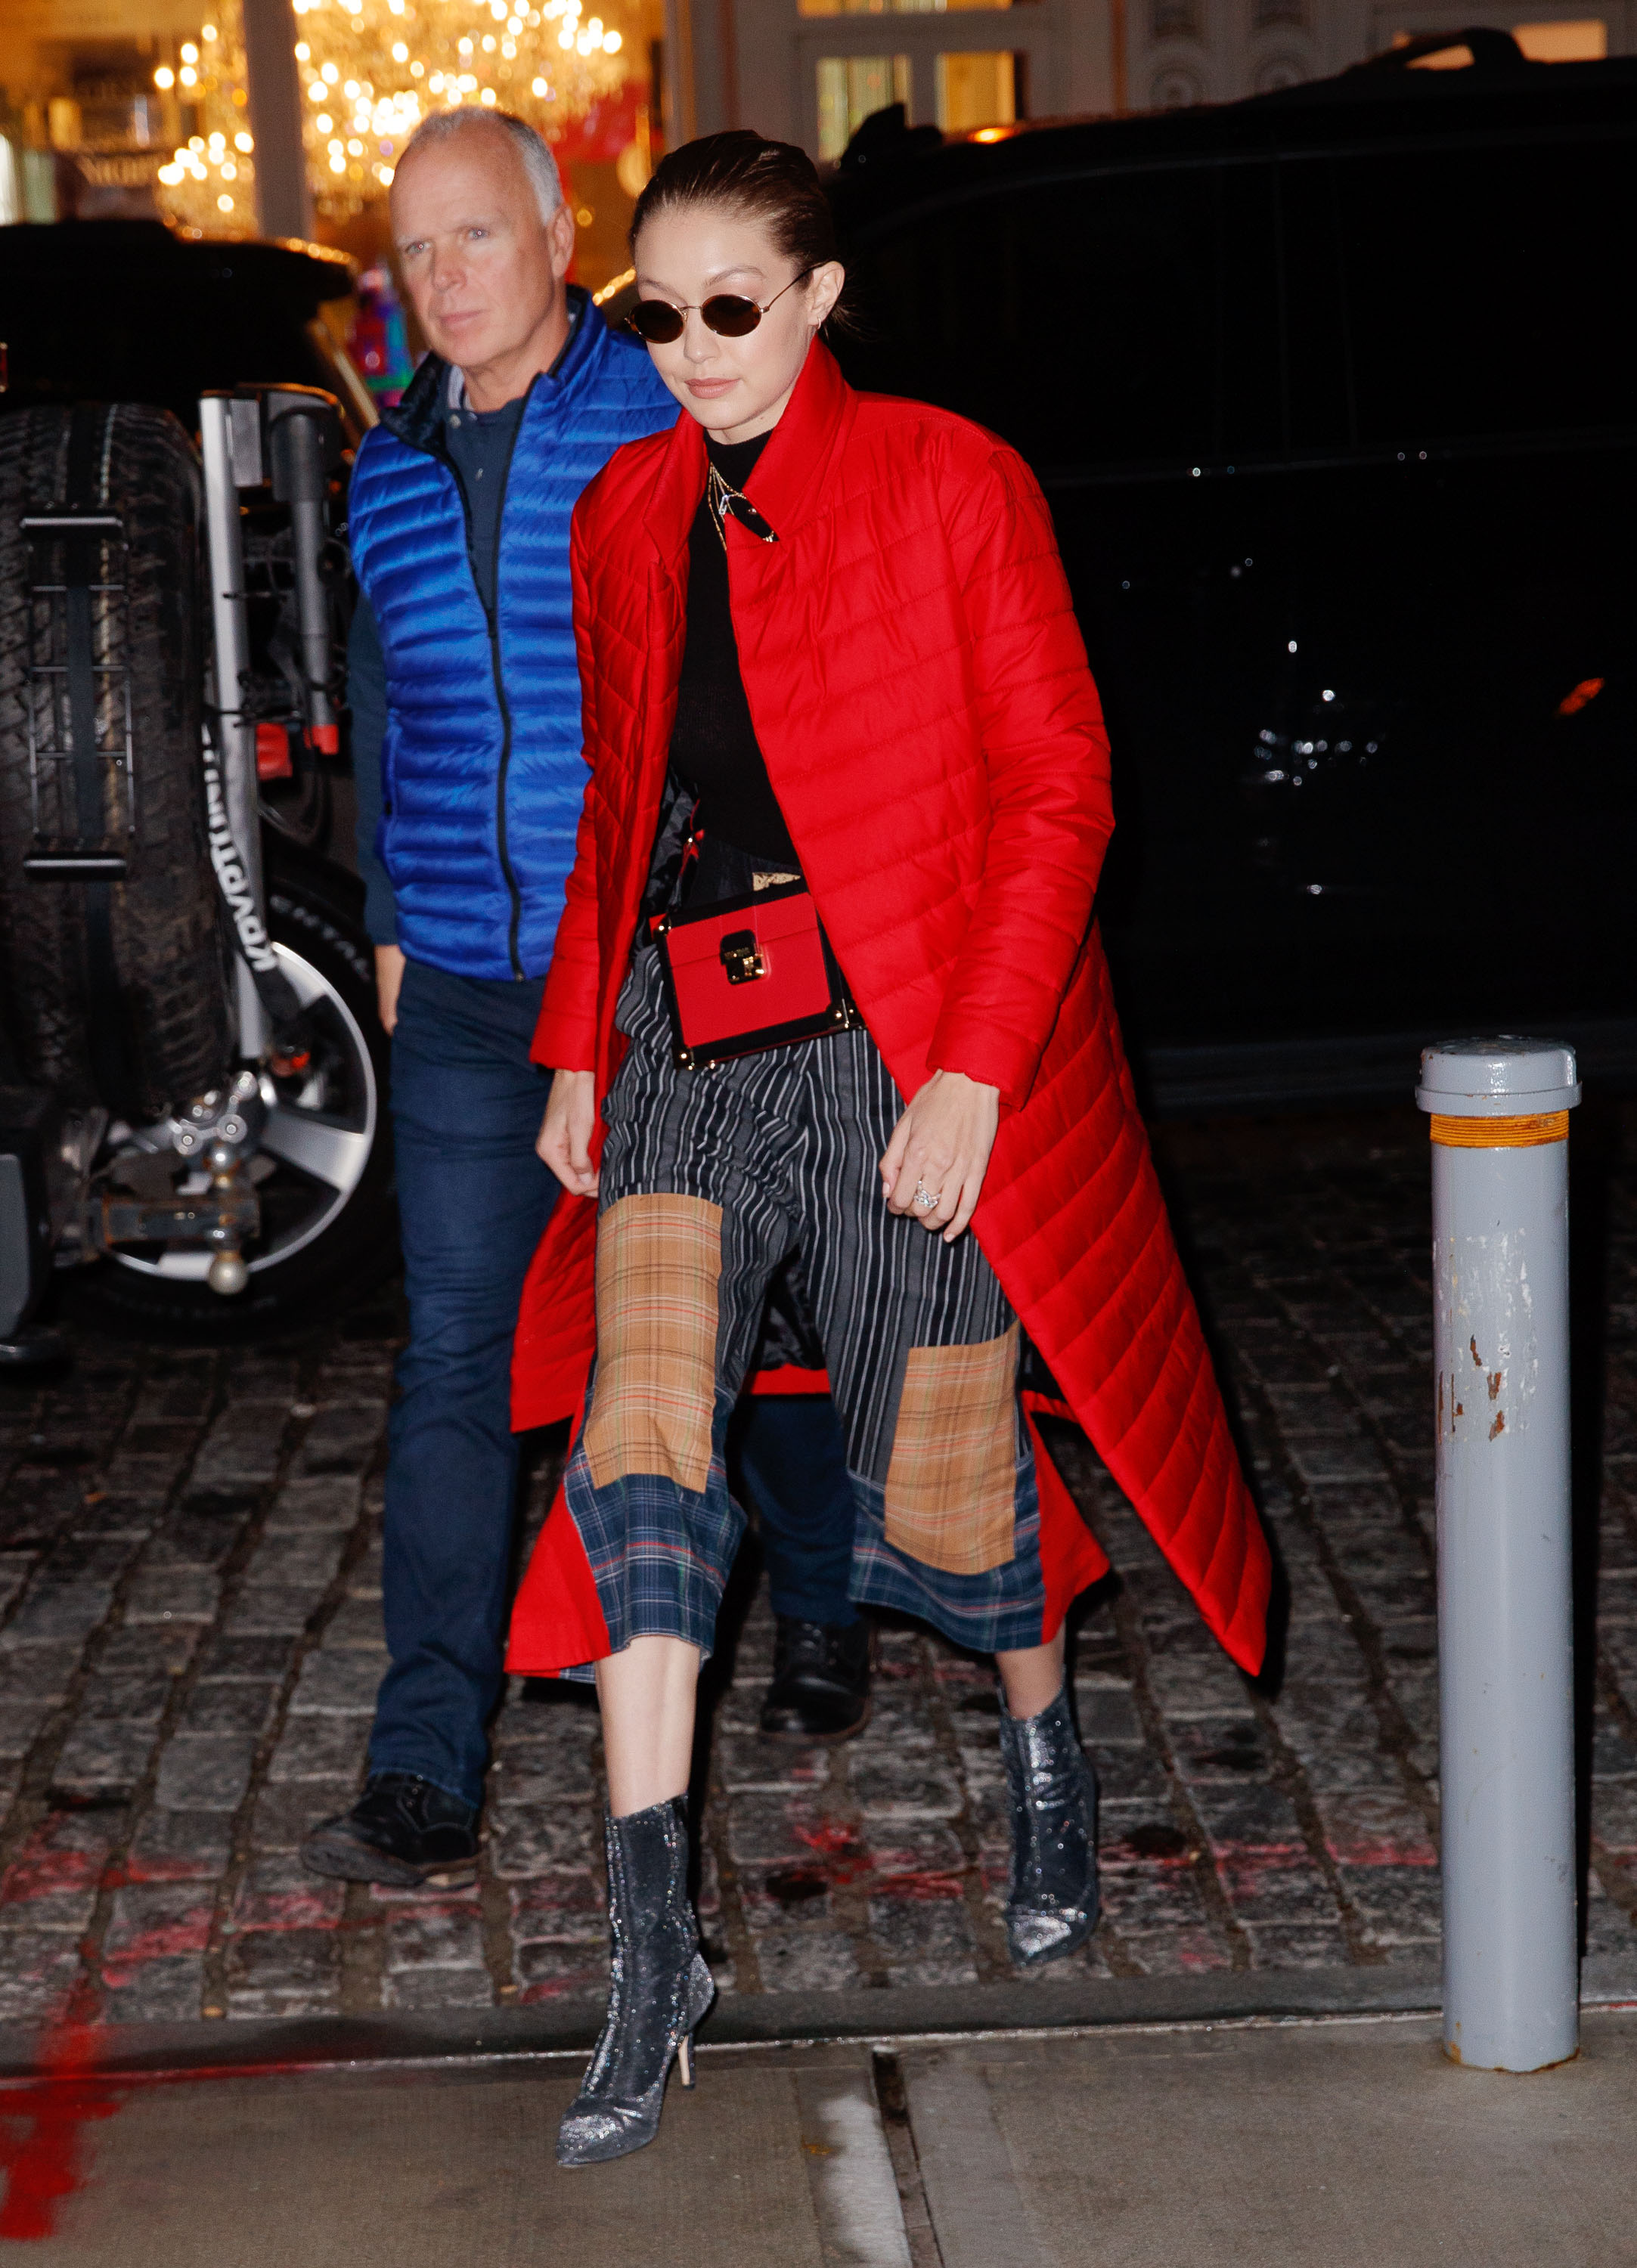 Gigi Hadid looks chic in a red puffy jacket in New York <P> Pictured: Gigi Hadid <B>Ref: SPL1649350  230118  </B><BR/> Picture by: Jackson Lee / Splash News<BR/> </P><P> <B>Splash News and Pictures</B><BR/> Los Angeles:310-821-2666<BR/> New York:212-619-2666<BR/> London:870-934-2666<BR/> <span id=